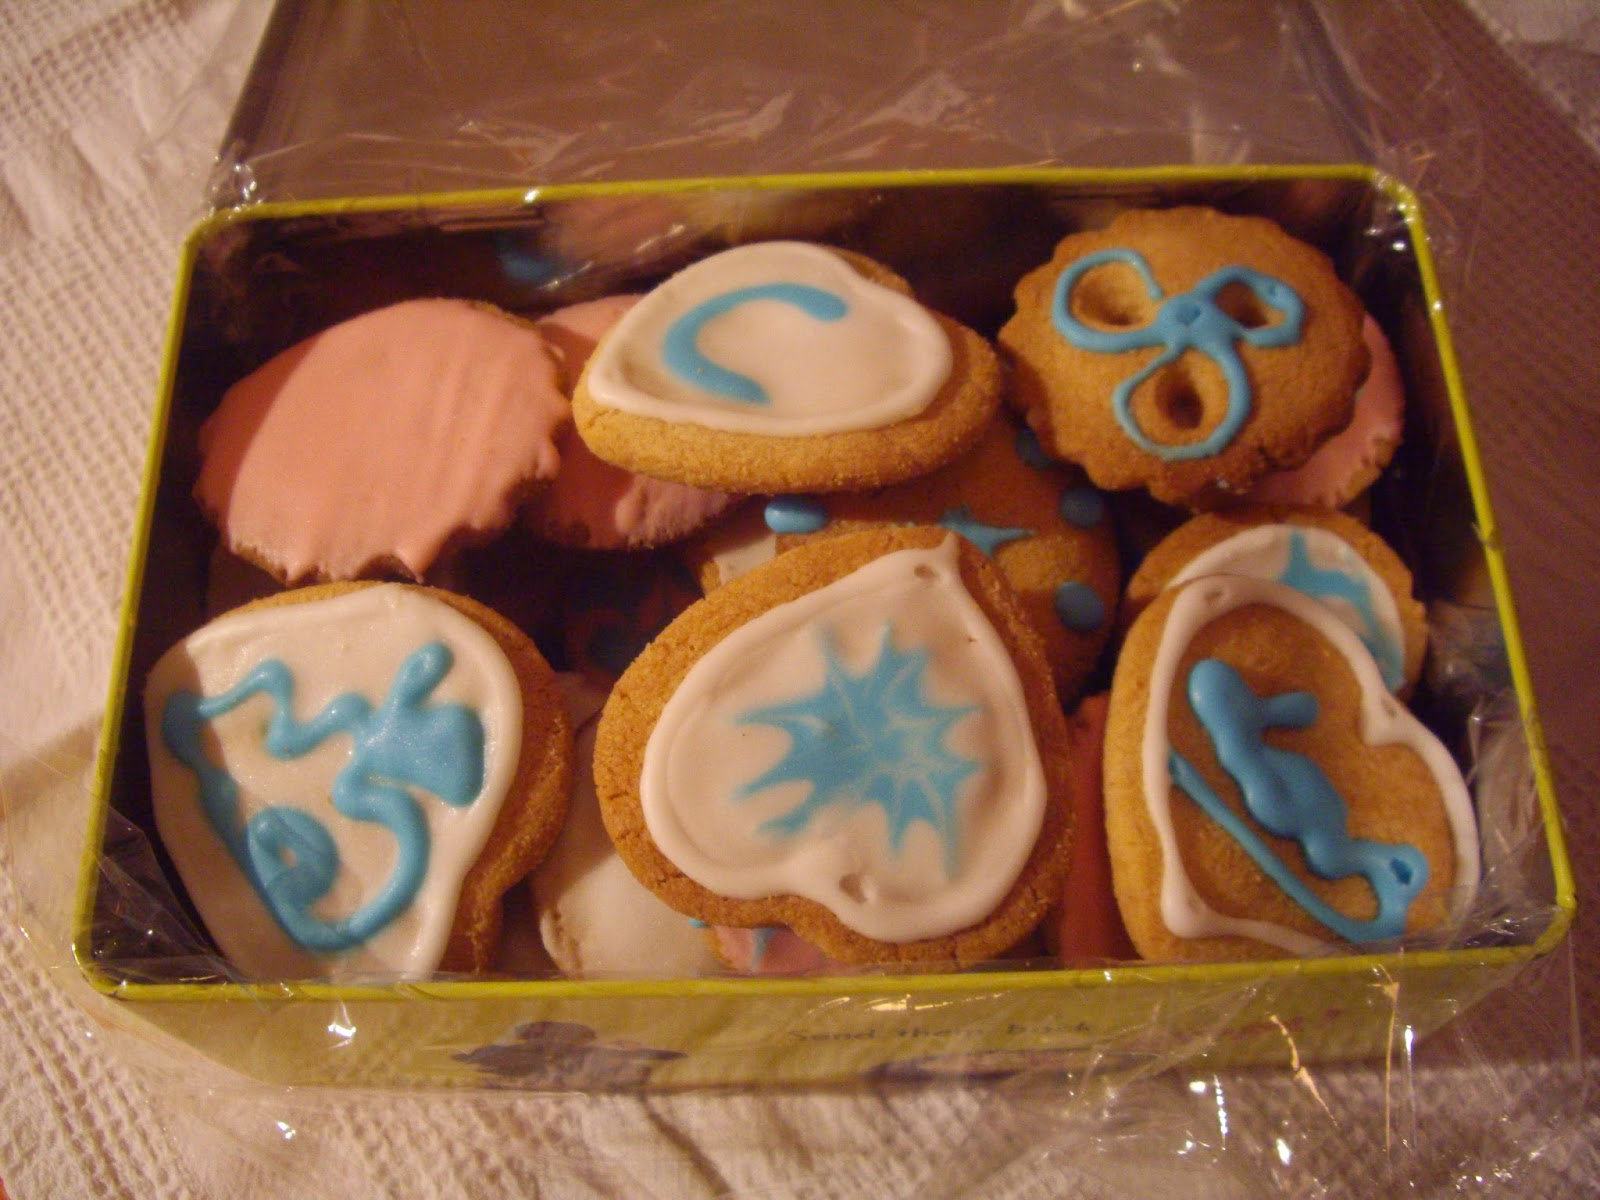 Decorar Galletas Harinaygasolina Decorar Galletas Glase Real Icing Royal